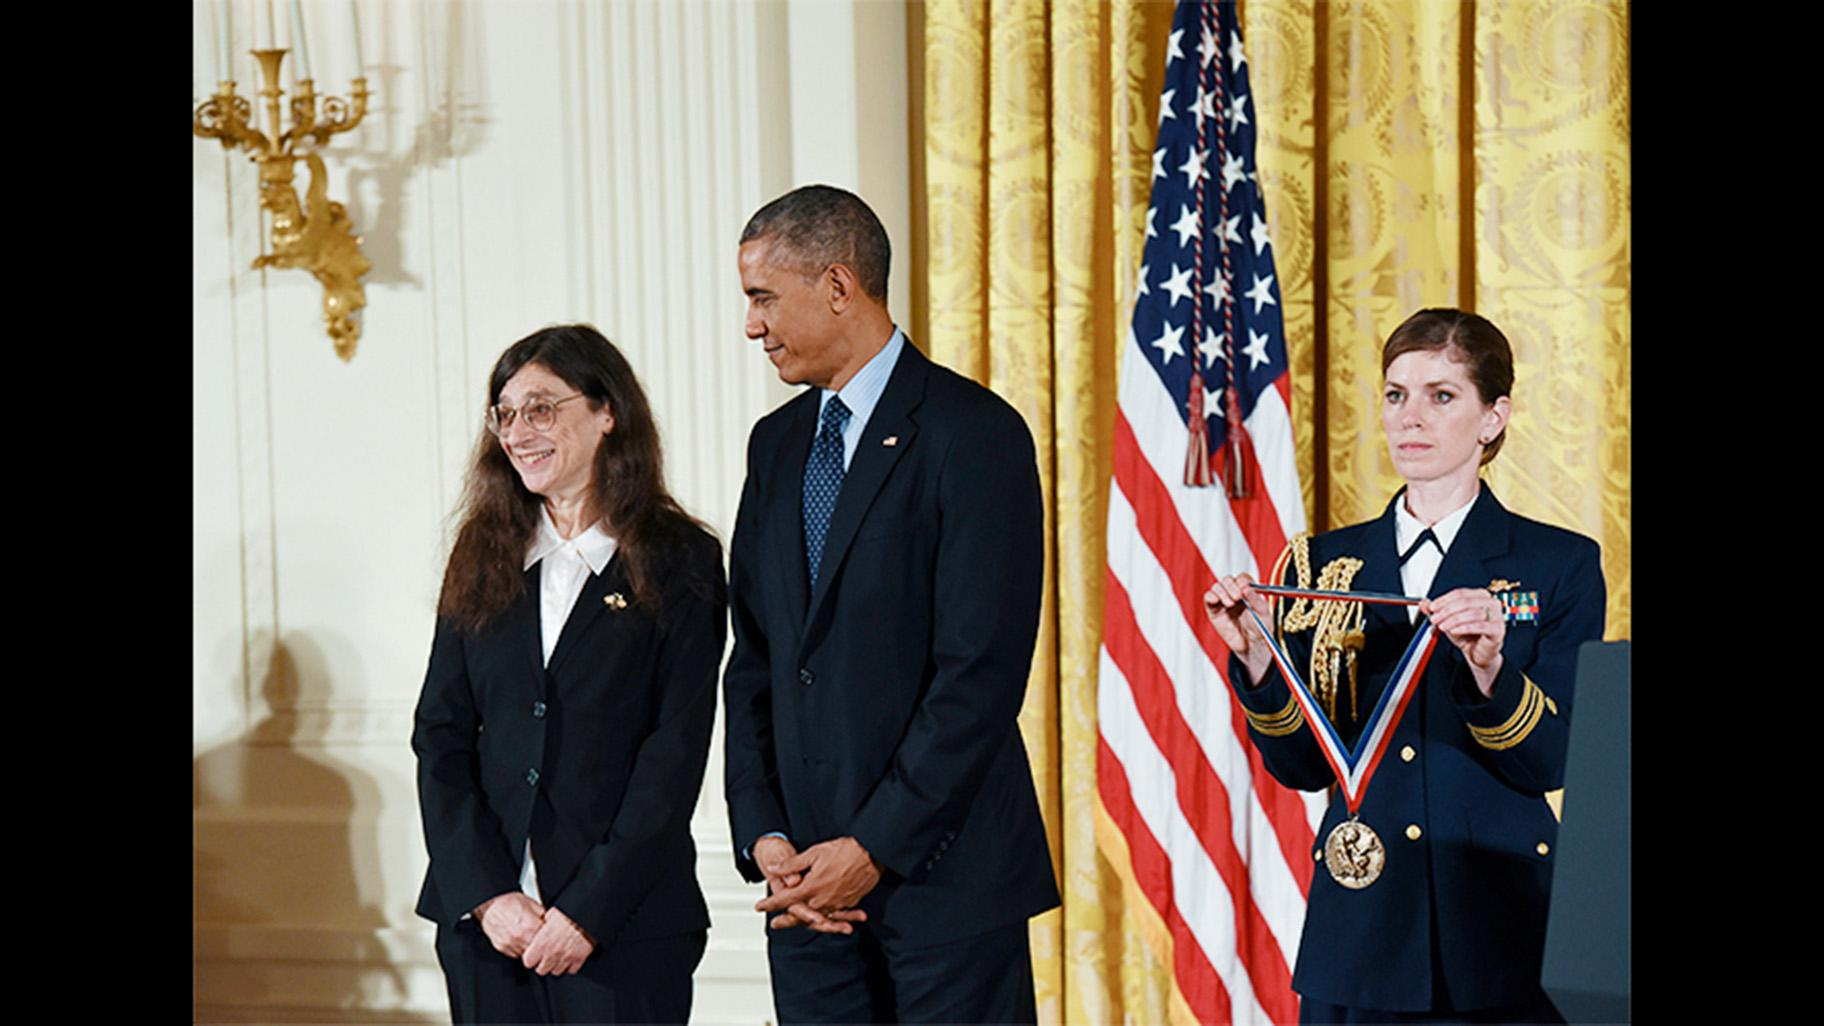 University of Illinois entomology professor May Berenbaum receives a National Medal of Science award from President Barack Obama at a White House ceremony on Nov. 20, 2014. (Courtesy National Science and Technology Medals Foundation)